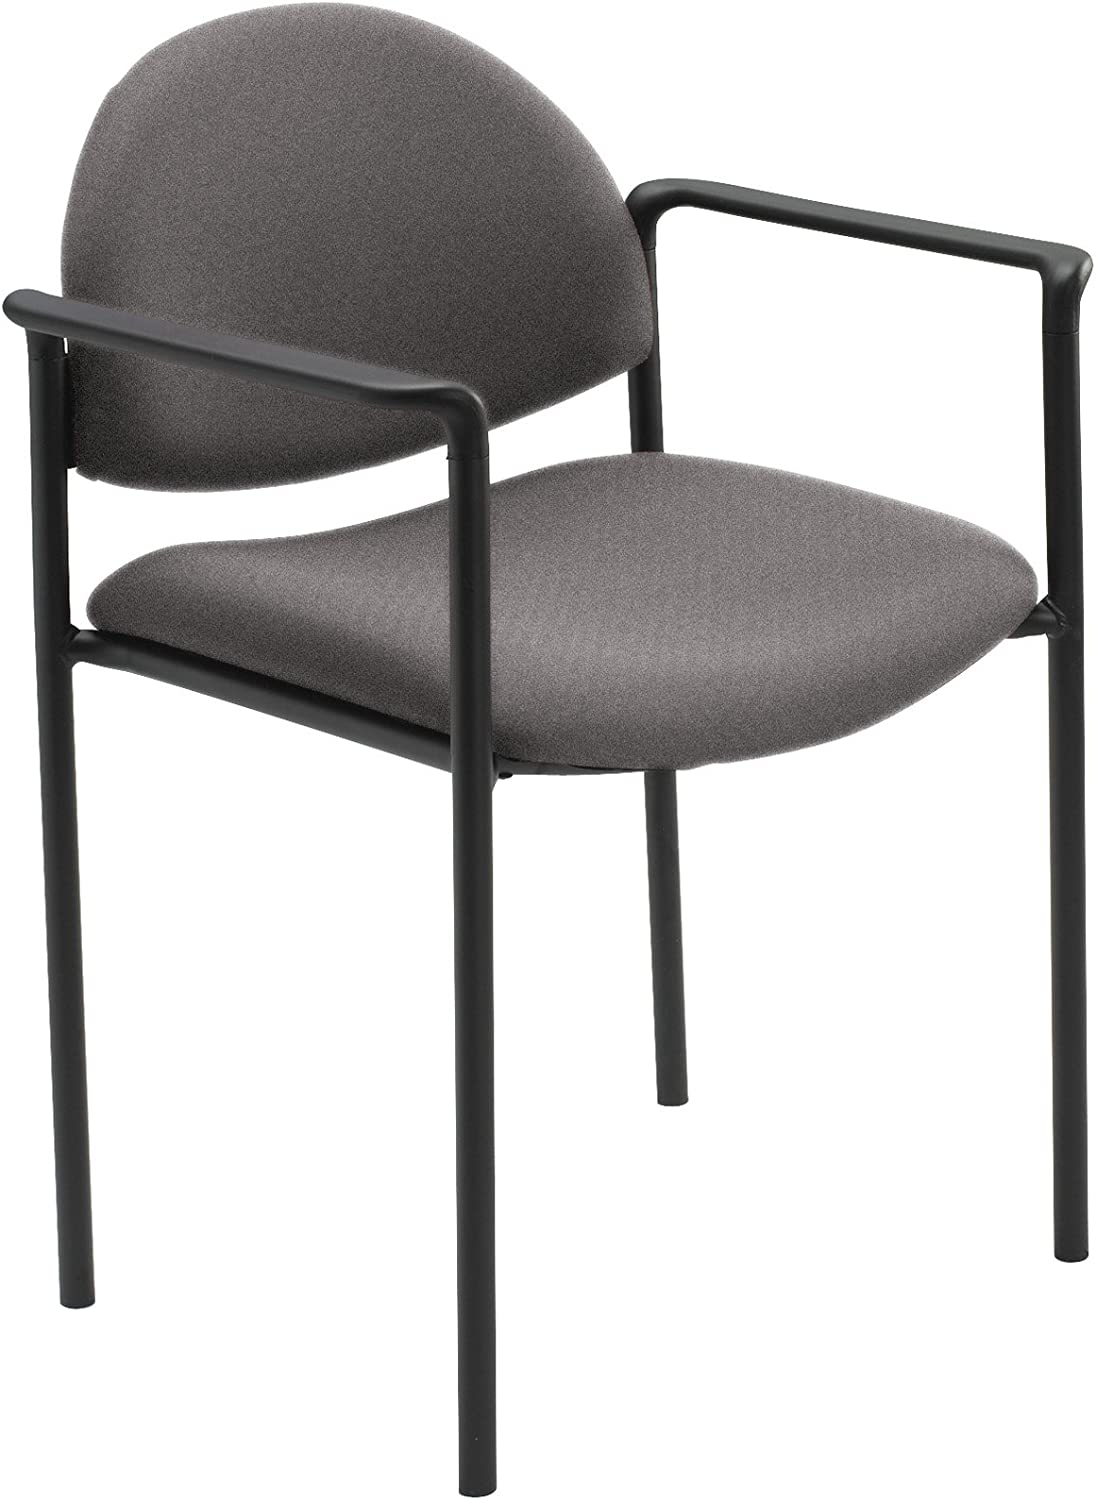 Safco SAF7010GR Wicket Stack Chair, 22-1 4  x 20-3 4  x 31 , Grey